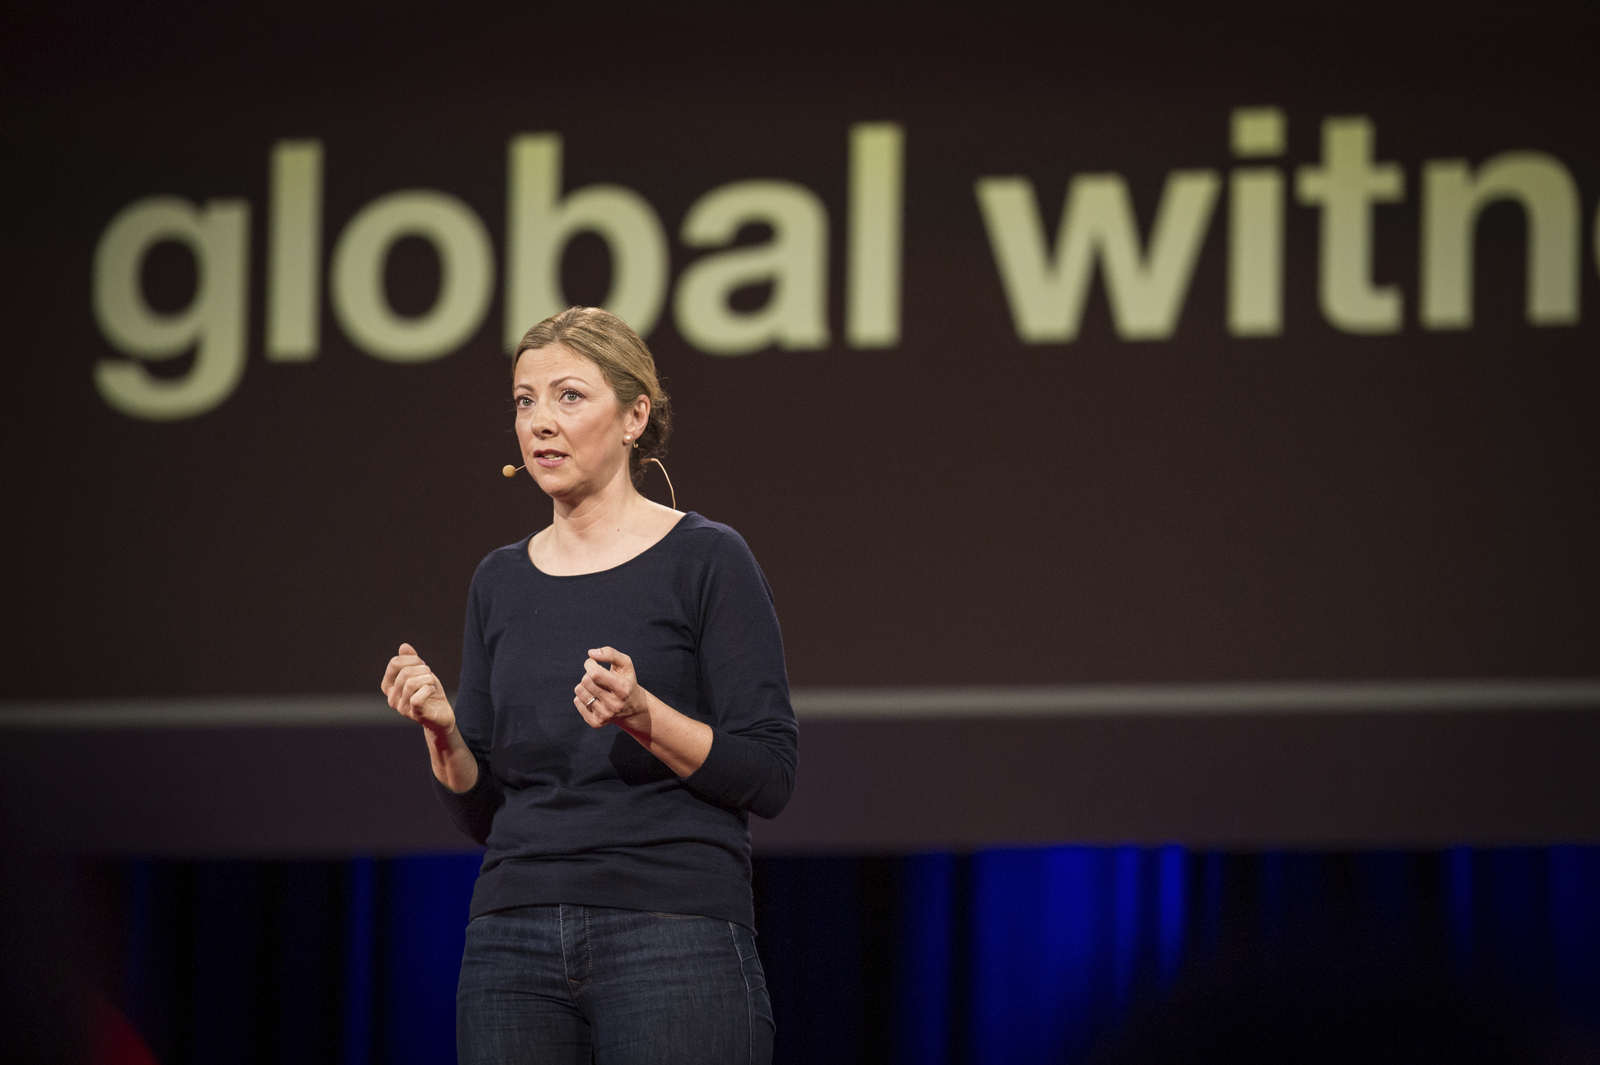 Charmian Gooch accepted the TED Prize in 2014, and launched a campaign to end anonymous shell companies. Her organization Global Witness has been working to make natural resource deals public since 1999. Photo: James Duncan Davidson/TED